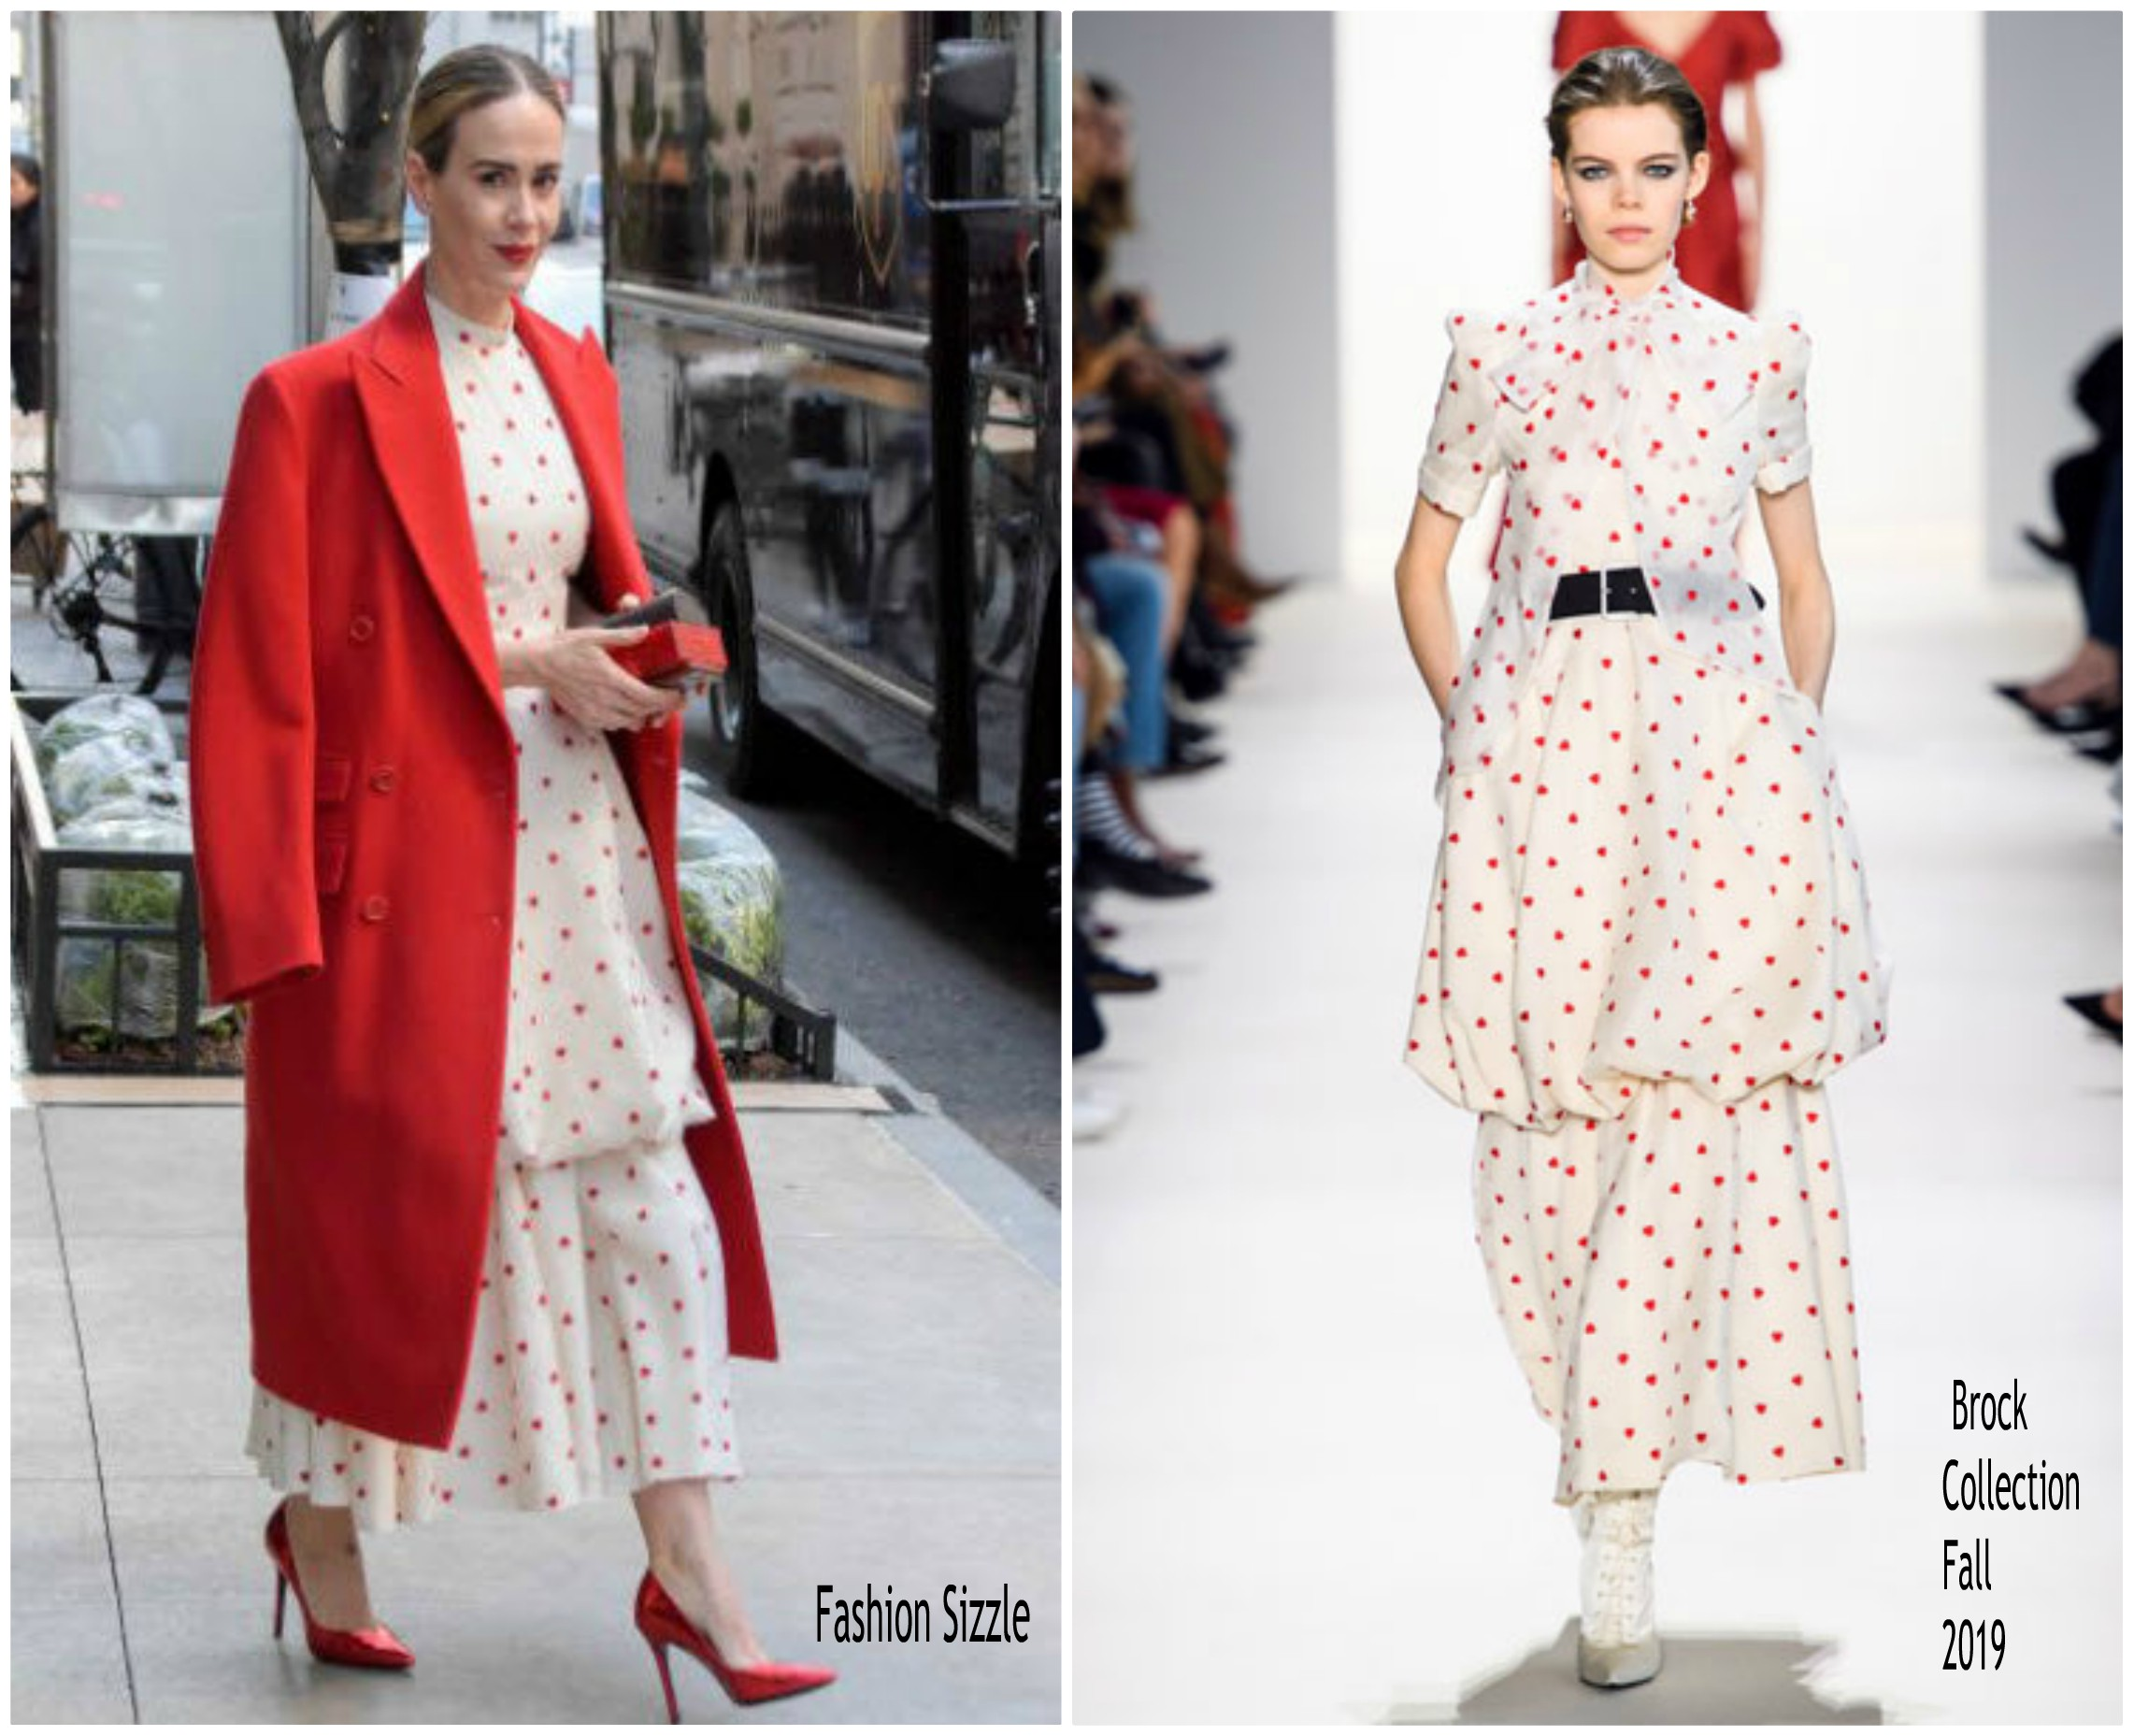 sarah-paulson-in-brock-collection-out-in-new-york